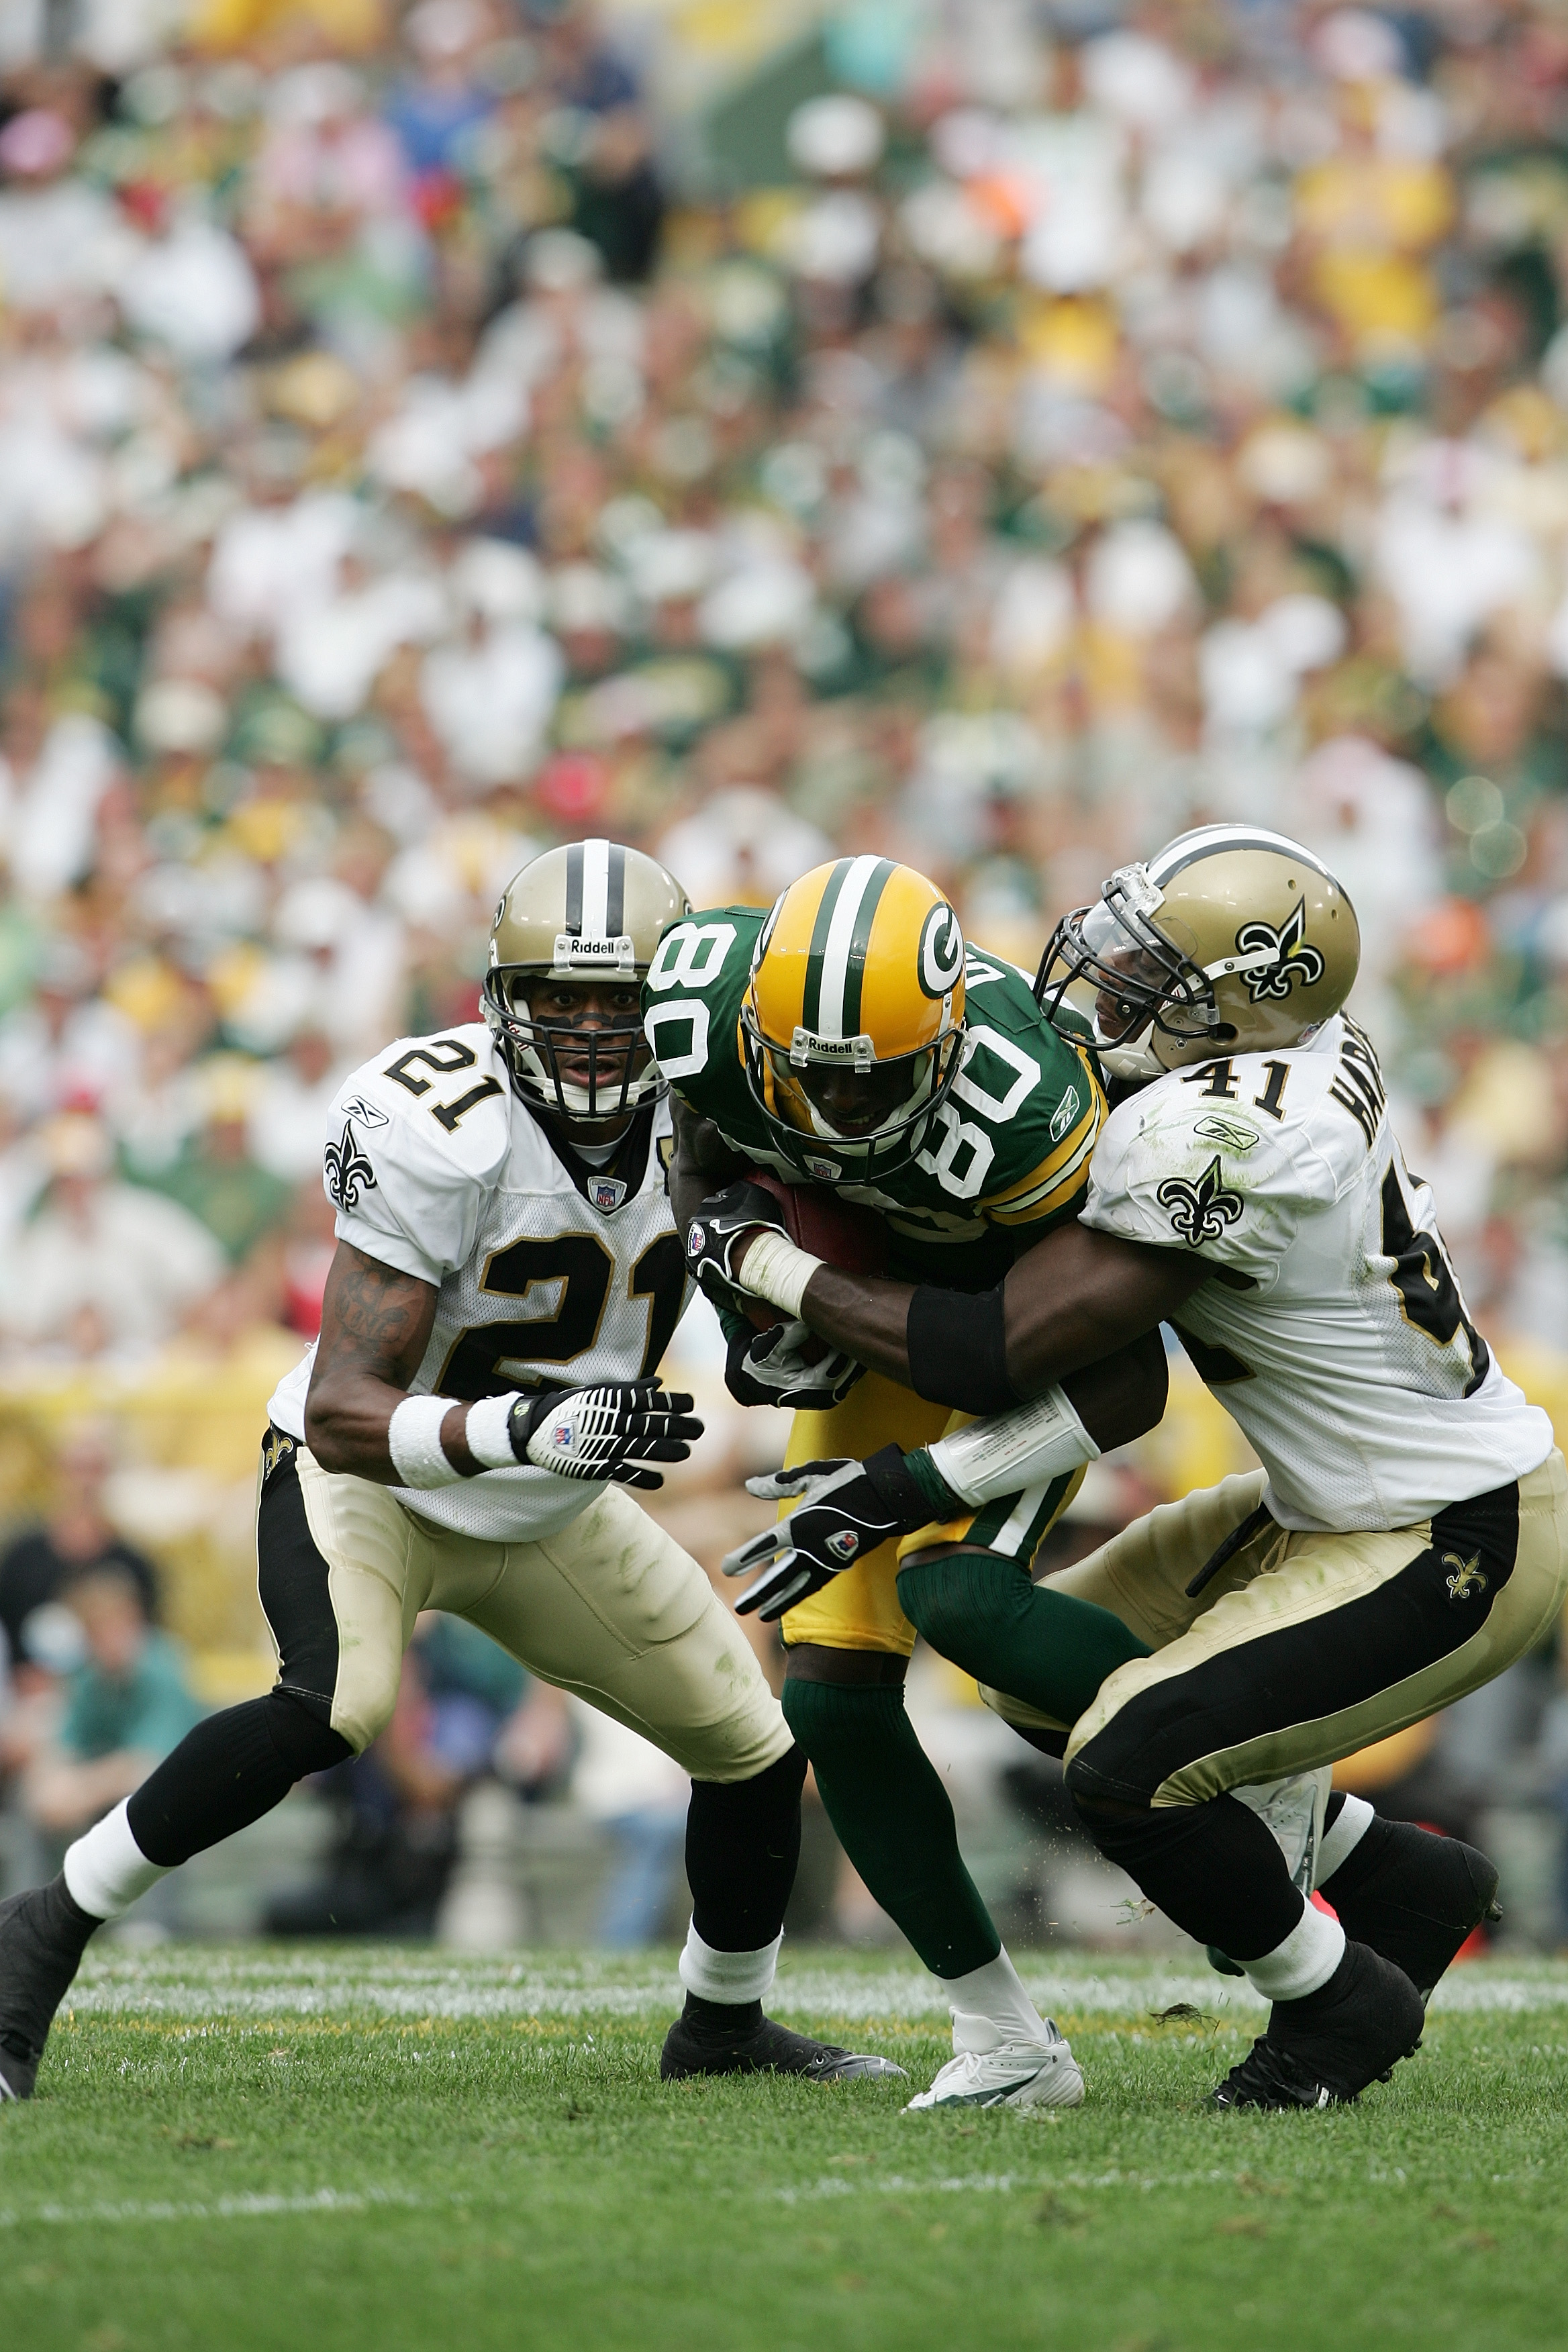 GREEN BAY, WI - SEPTEMBER 17:  Wide receiver Donald Driver #80 of the Green Bay Packers fights off the tackle attempt of cornerback Jason Craft #21 and safety Roman Harper #41 of the New Orleans Saints on September 17, 2006 at Lambeau Field in Green Bay,